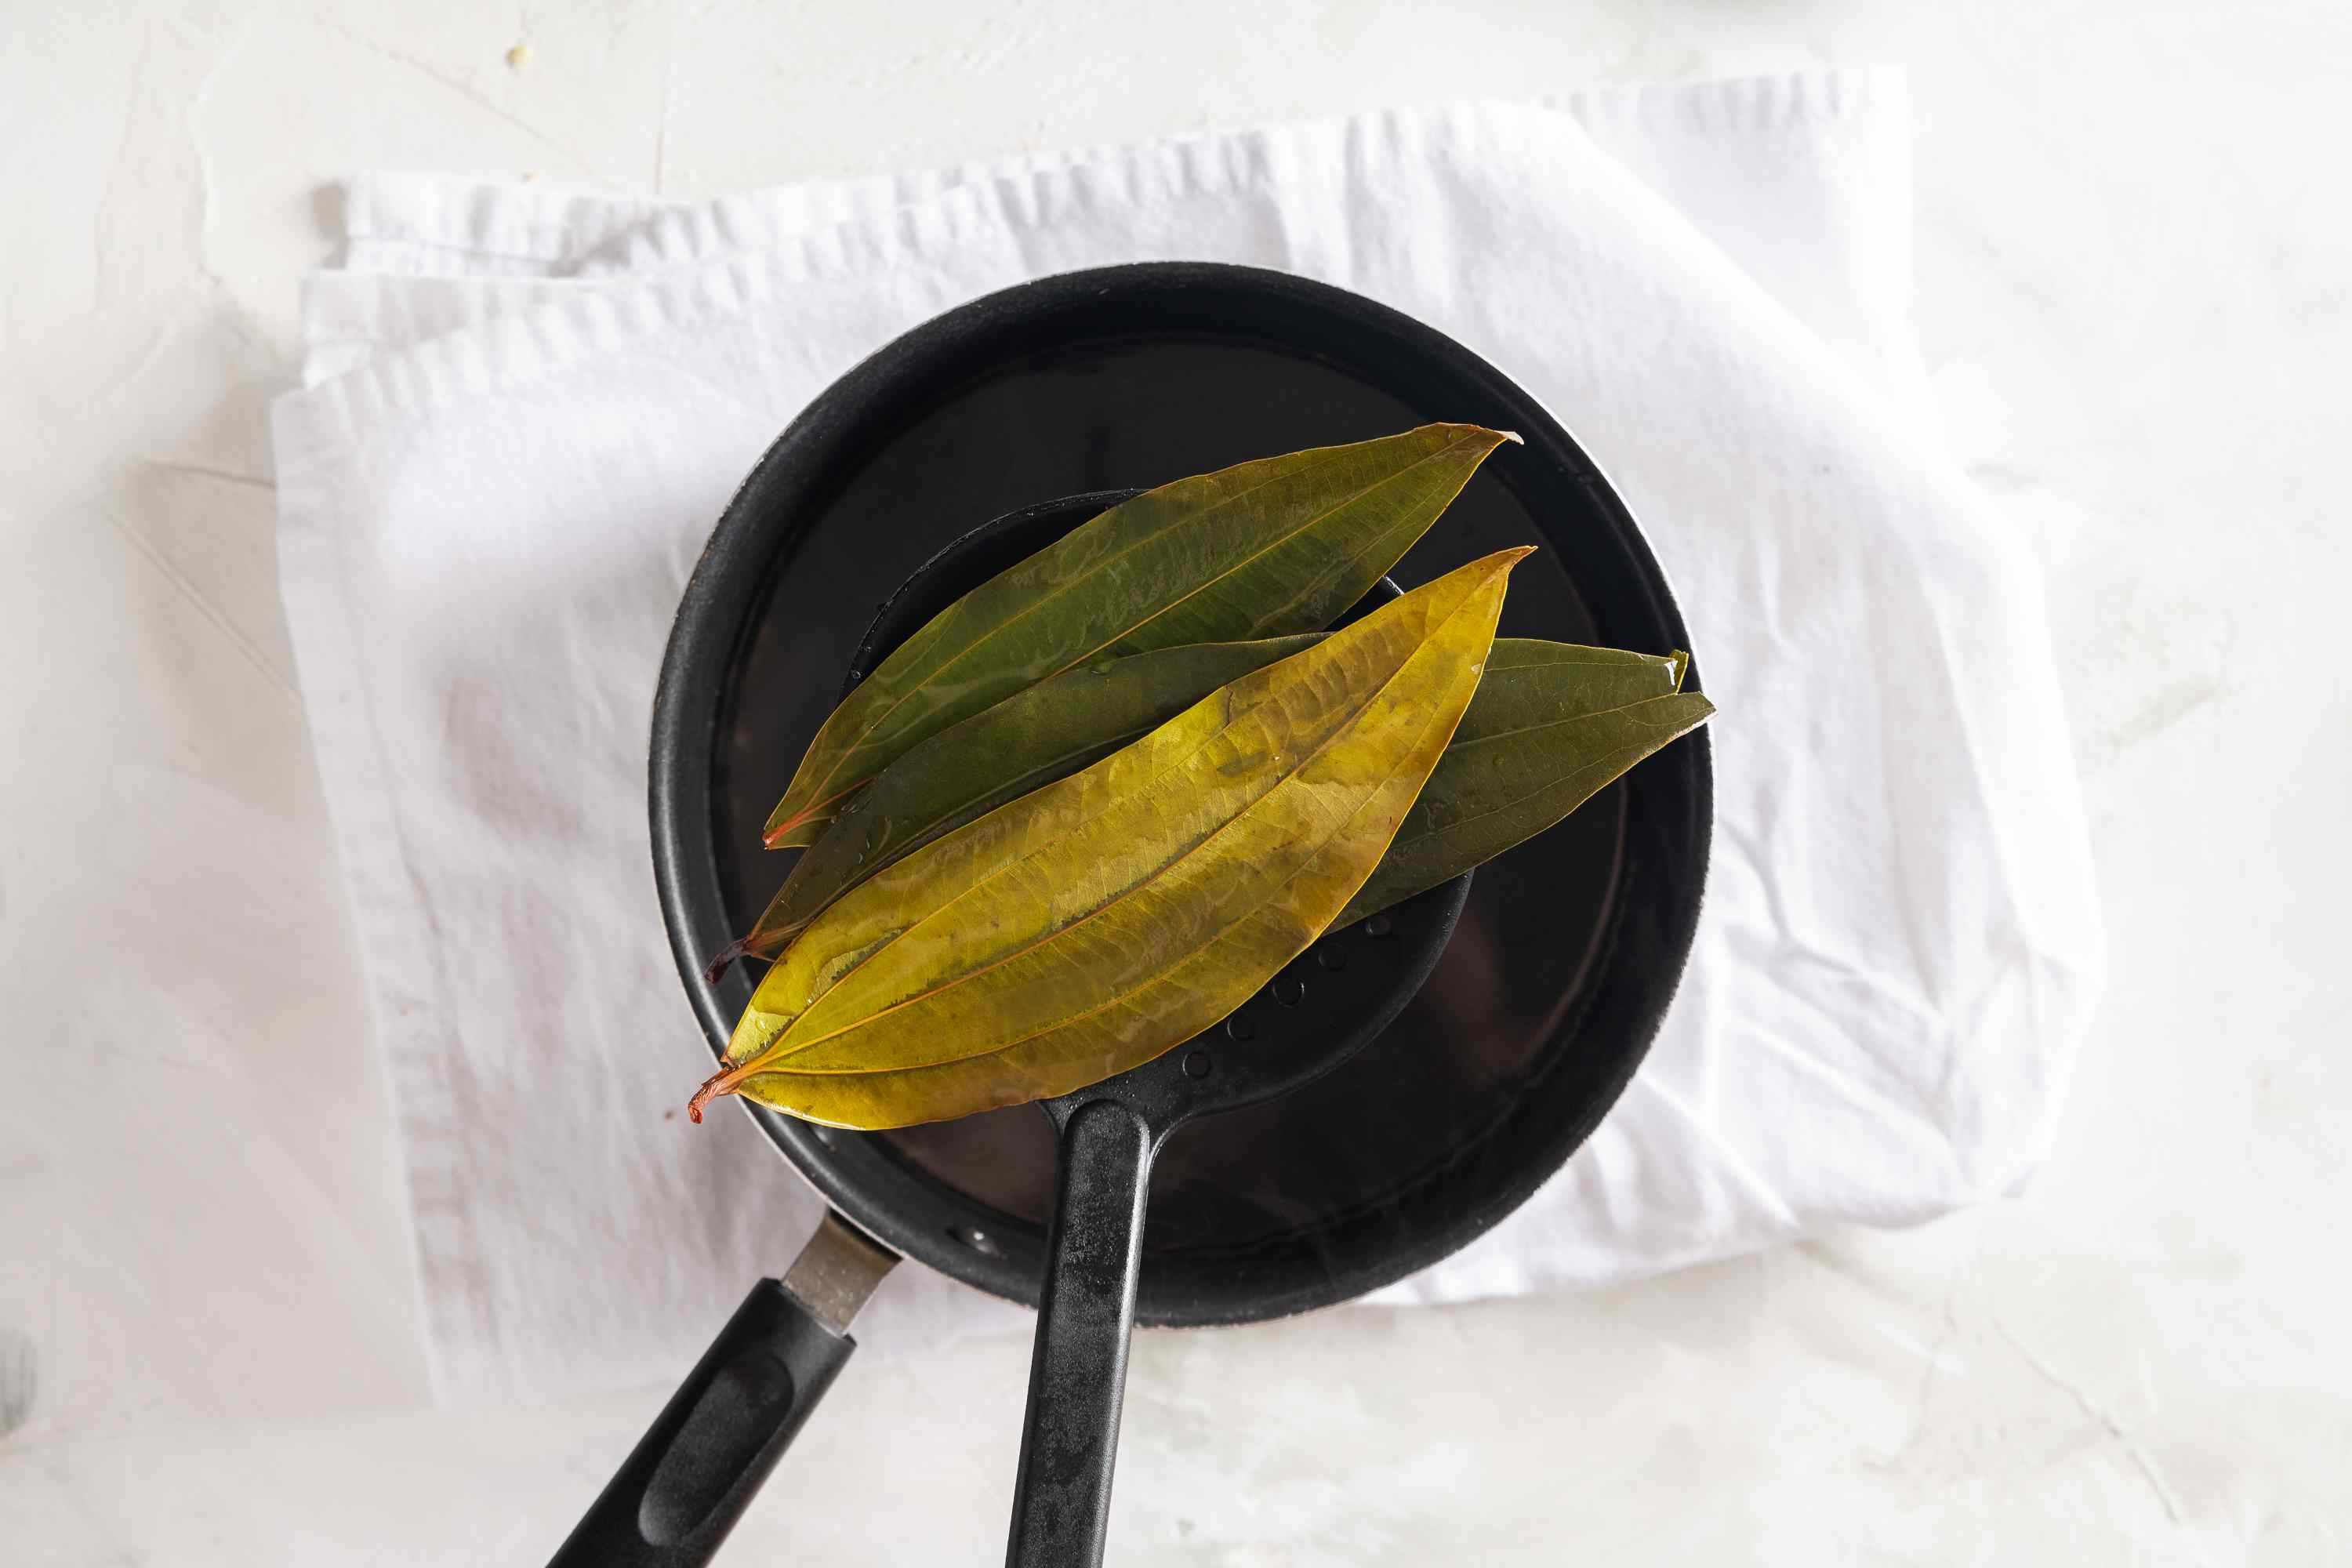 Strain out the bay leaves from the pot